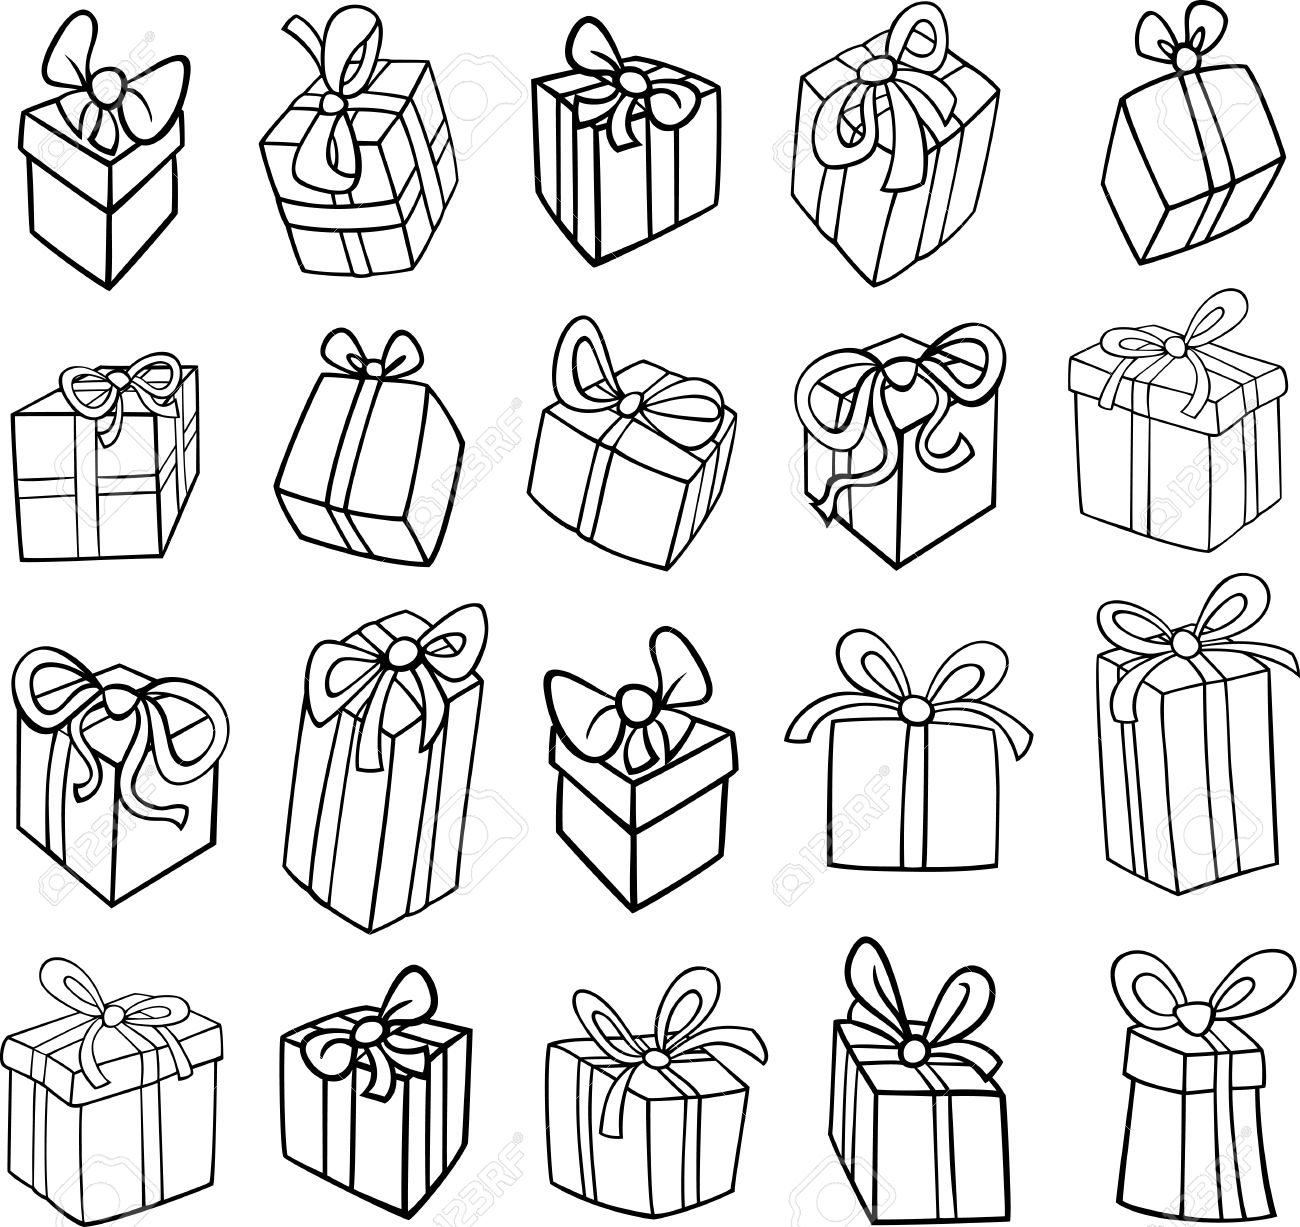 Black And White Cartoon Illustration Of Christmas Or Birthday Royalty Free Cliparts Vectors And Stock Illustration Image 23643656